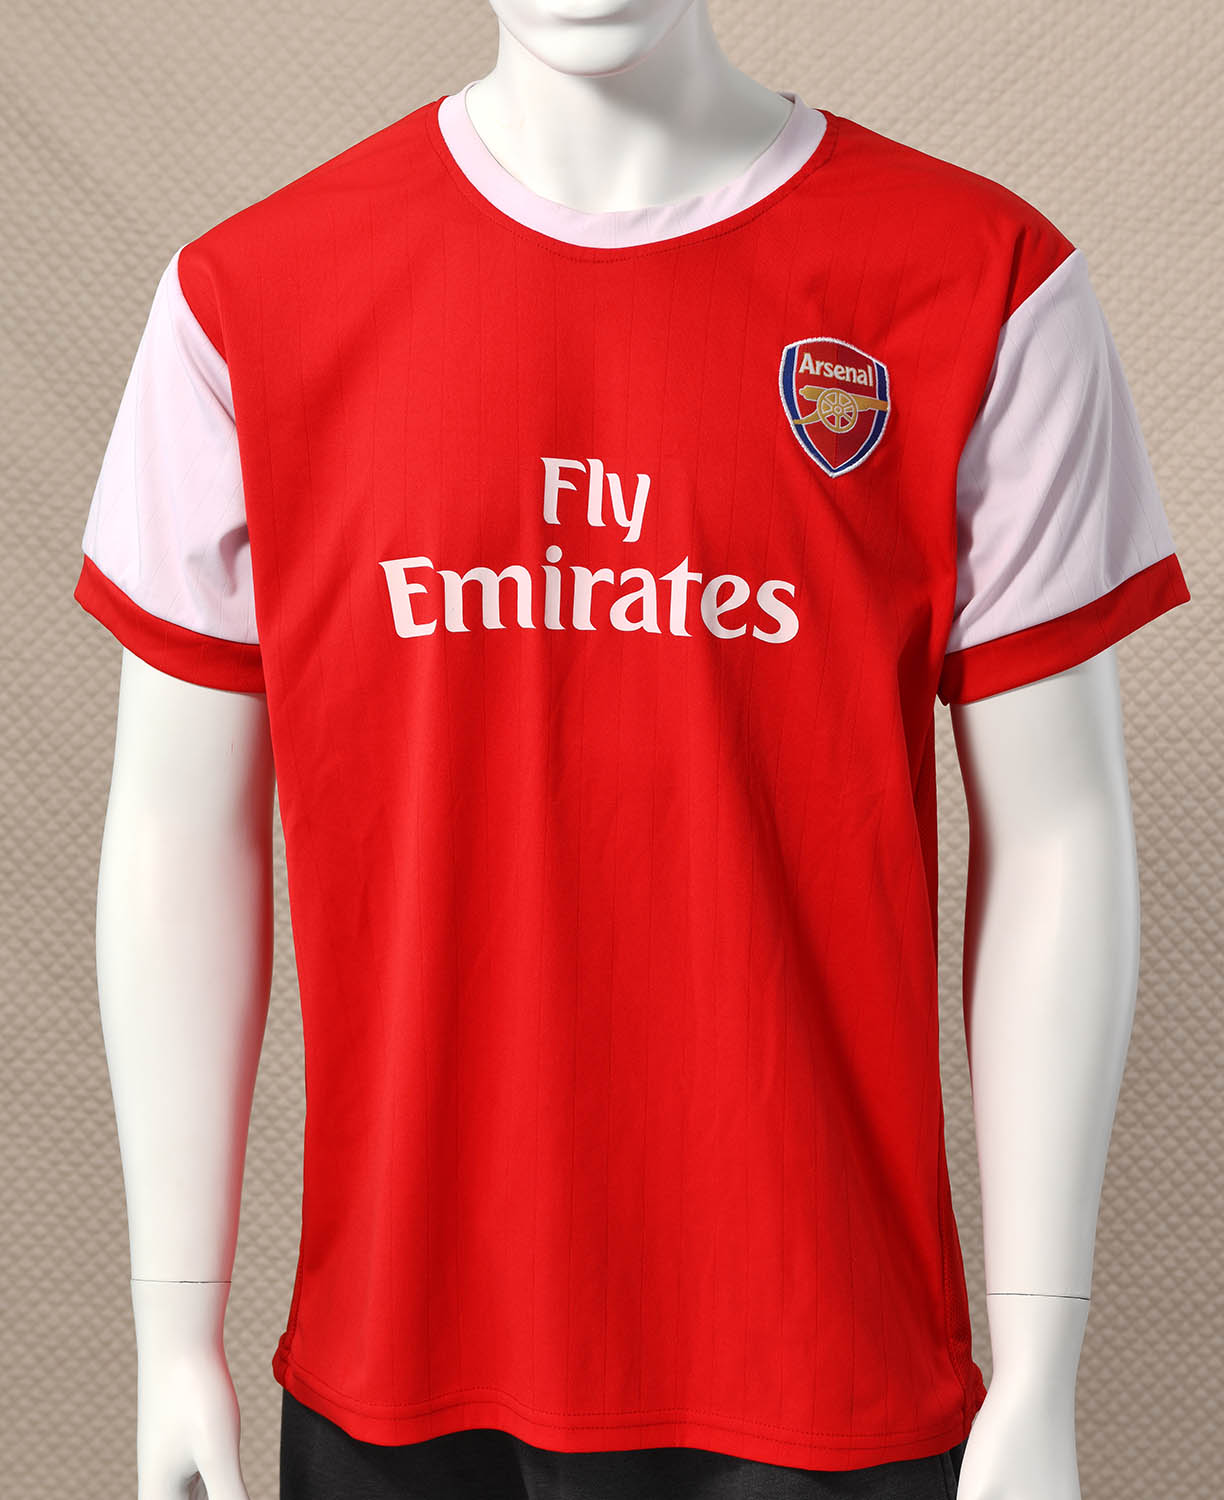 detailed look f13db ec3e1 Arsenal 2010-11 Jersey